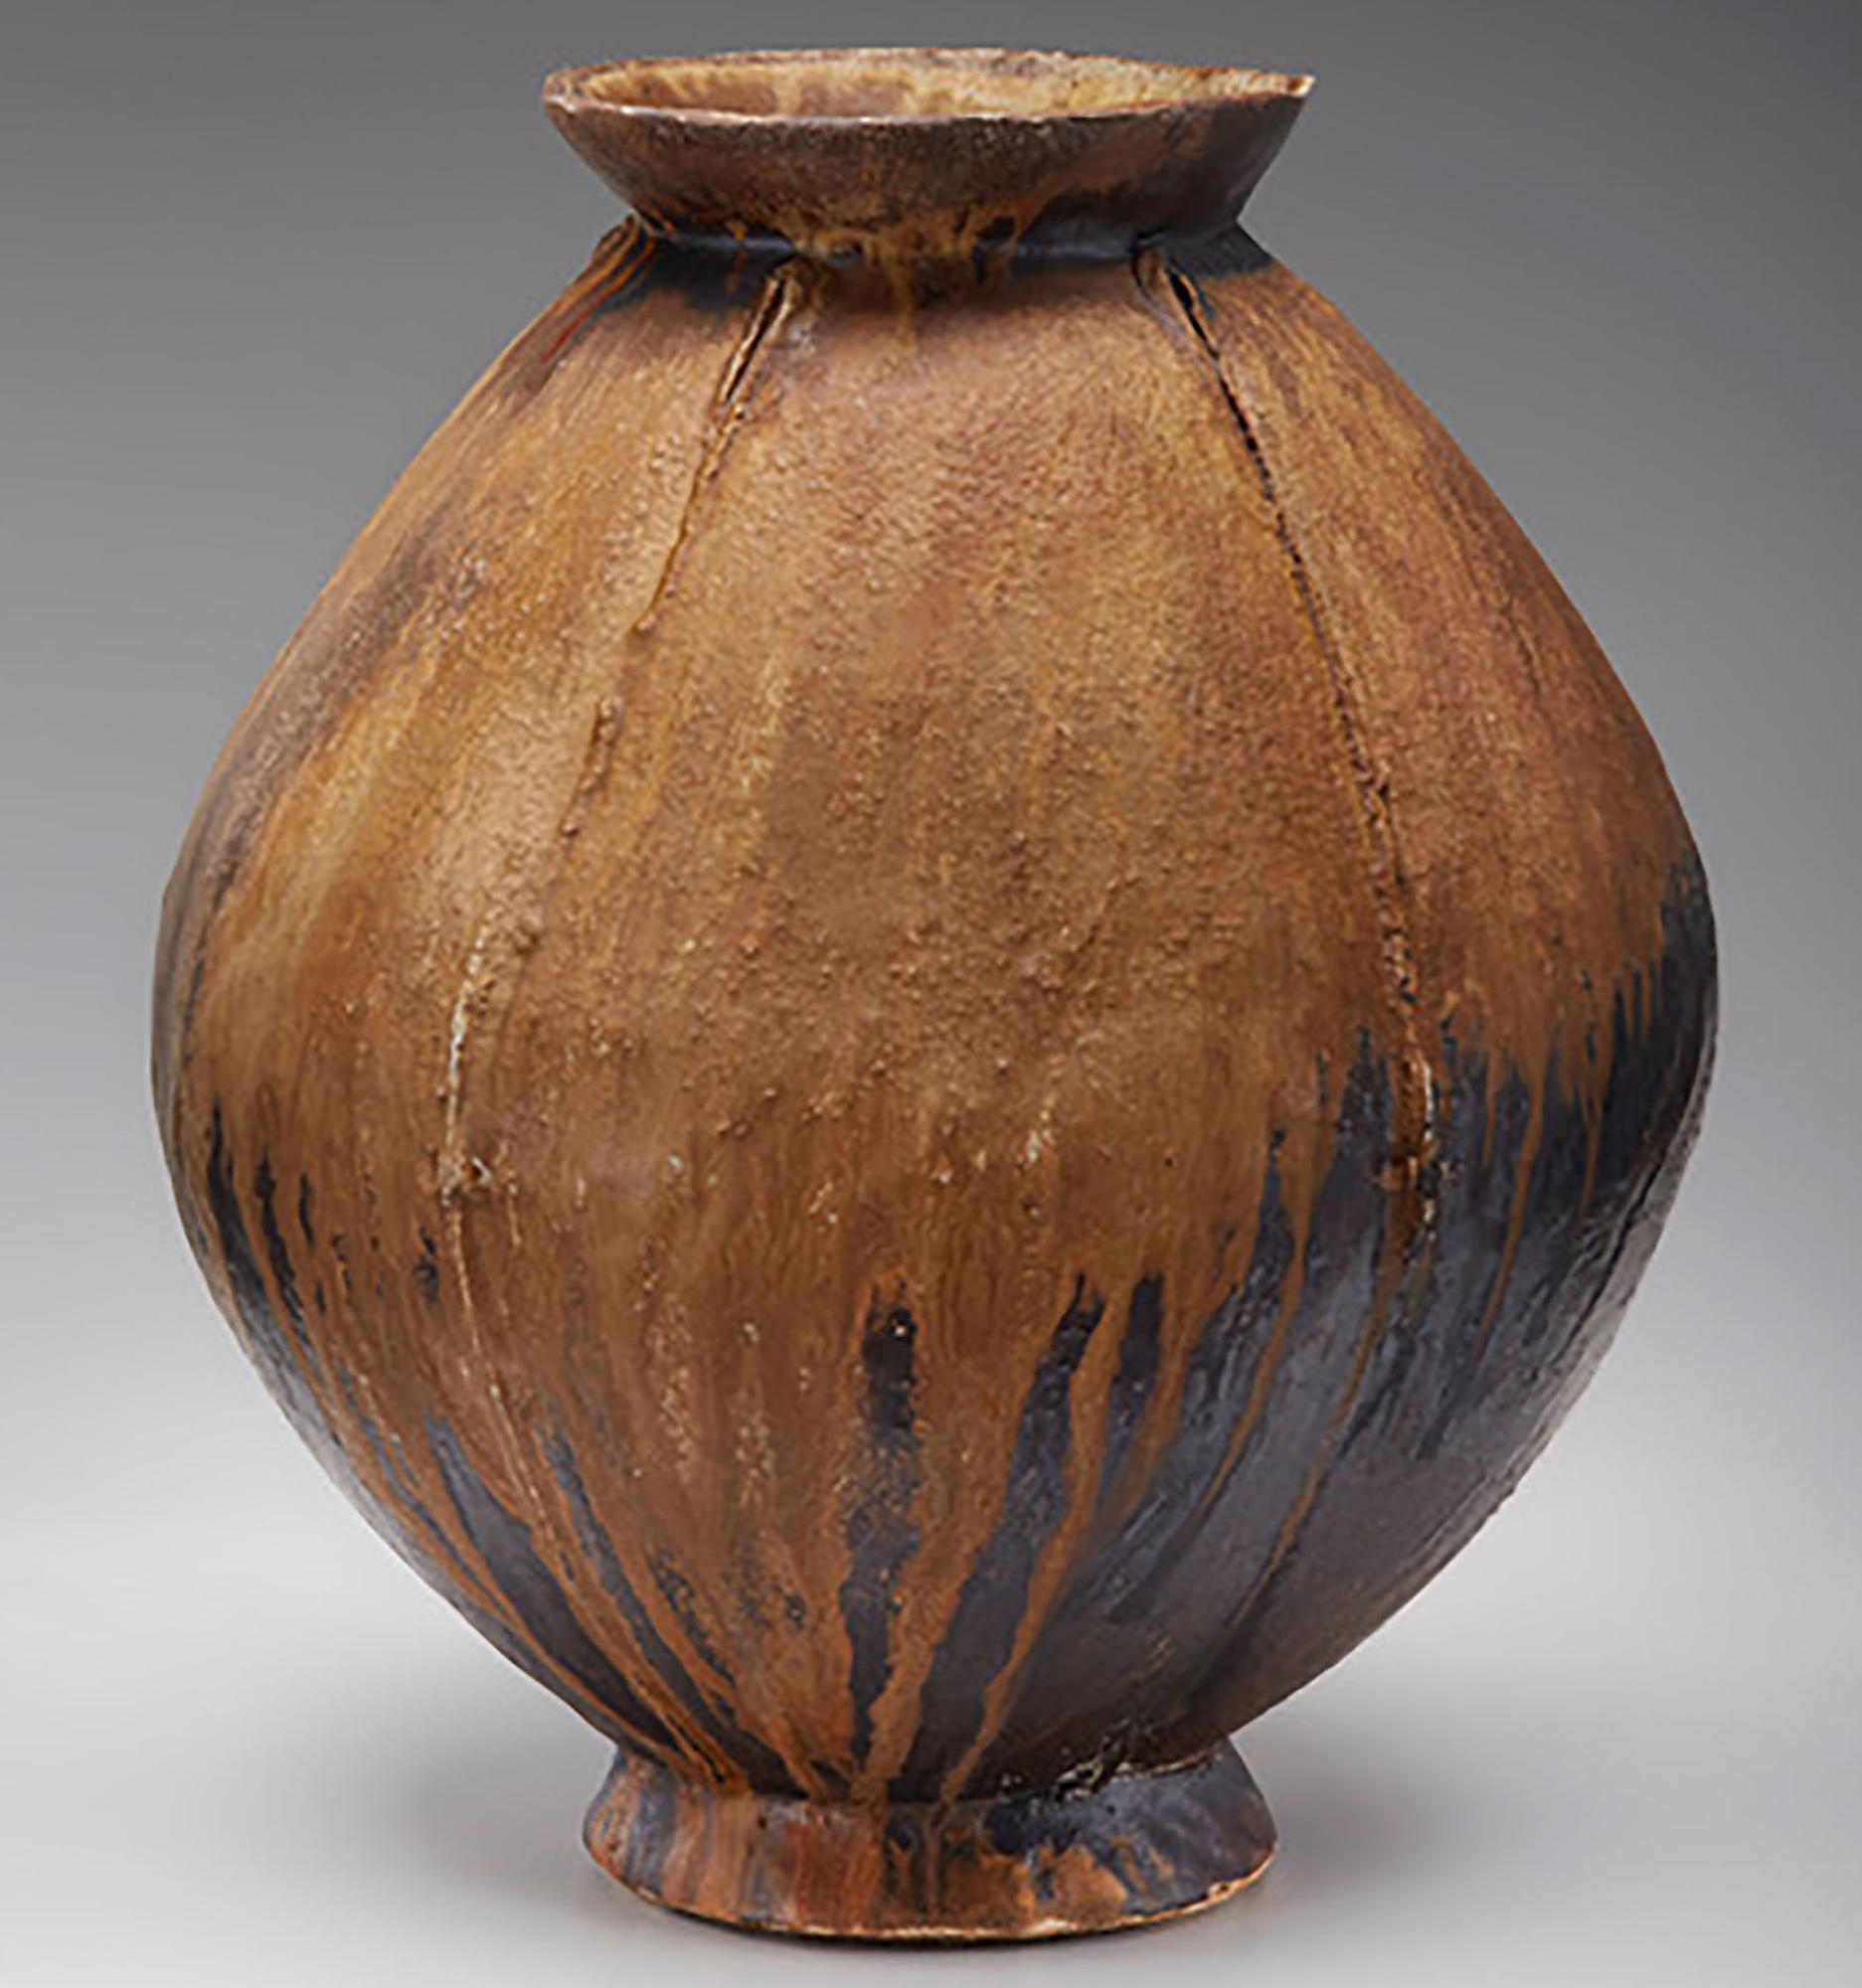 Round, brown ceramic vessel by Randy Johnson.